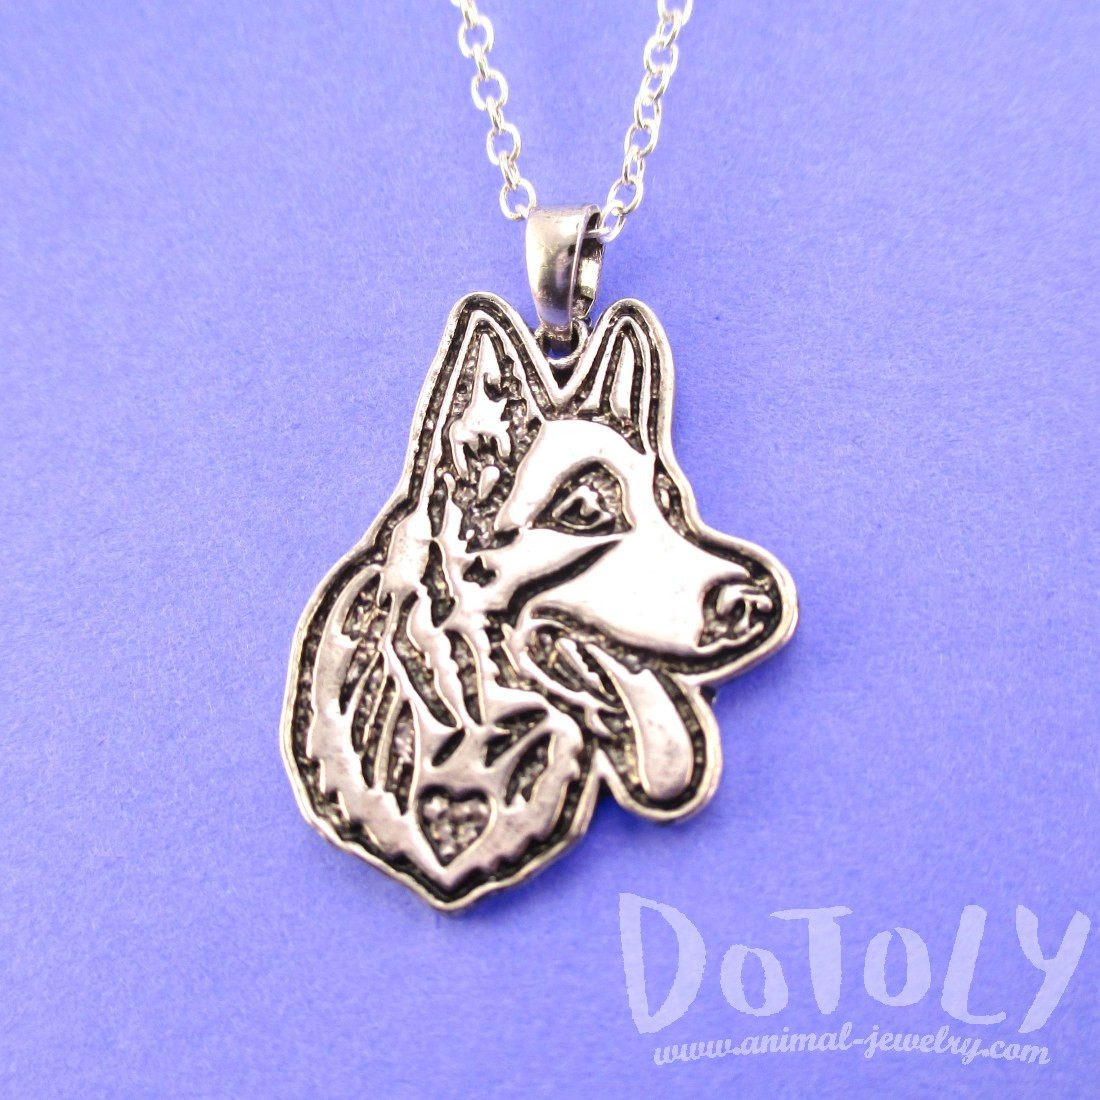 German Shepherd Dog Portrait Pendant Necklace in Silver